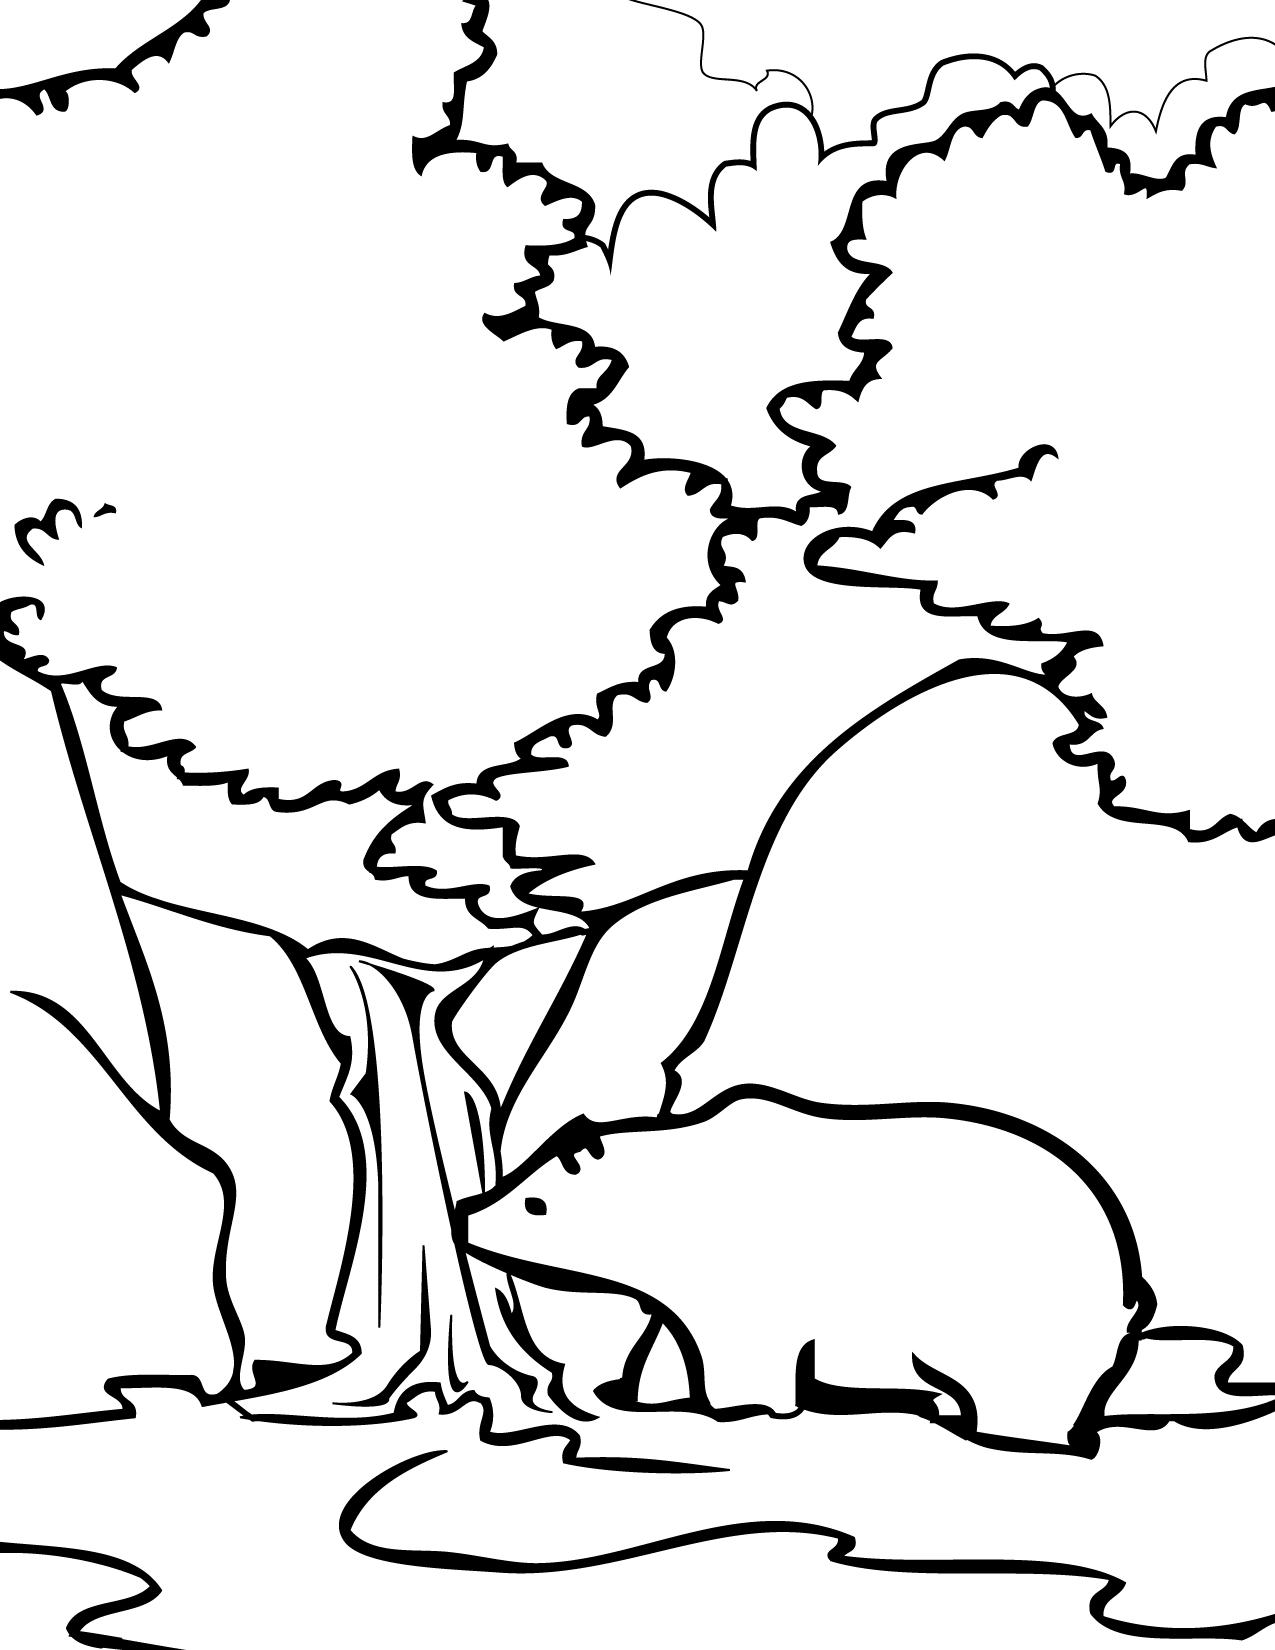 great smoky mountains coloring page handipoints